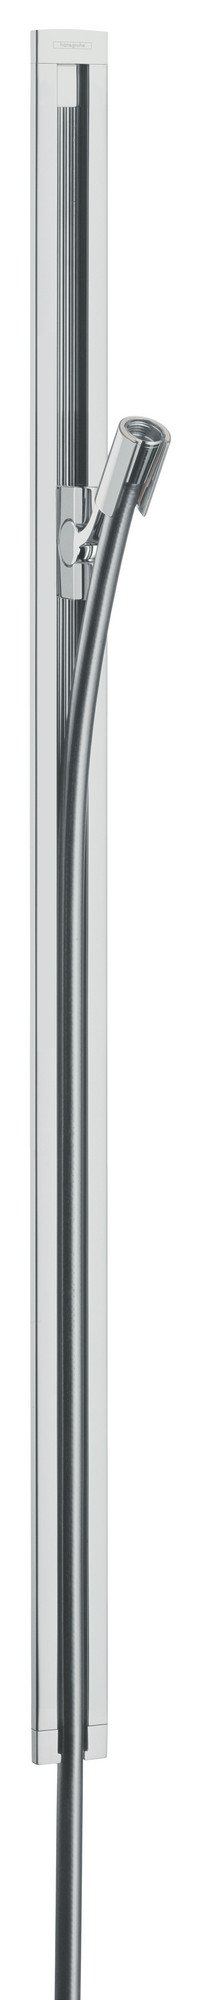 Hansgrohe 27844000 Puravida Wallbar, Chrome by Hansgrohe